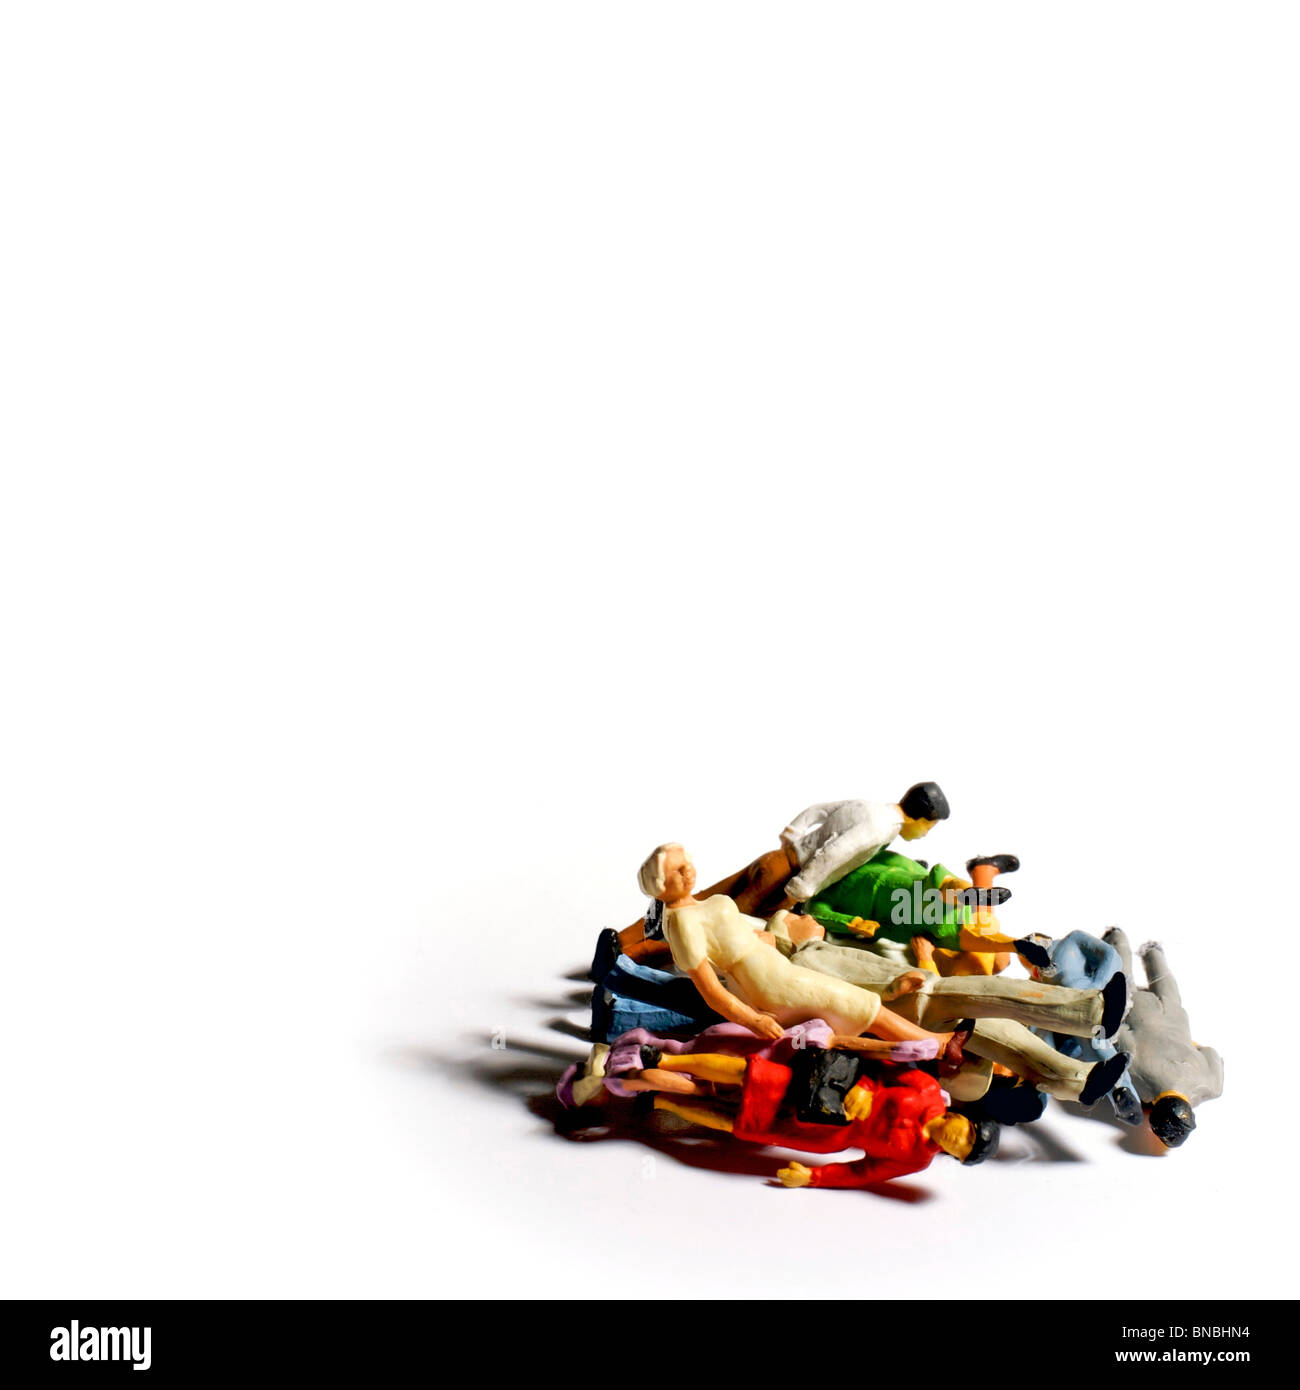 Pile of people - unemployment / exclusion concept - Stock Image